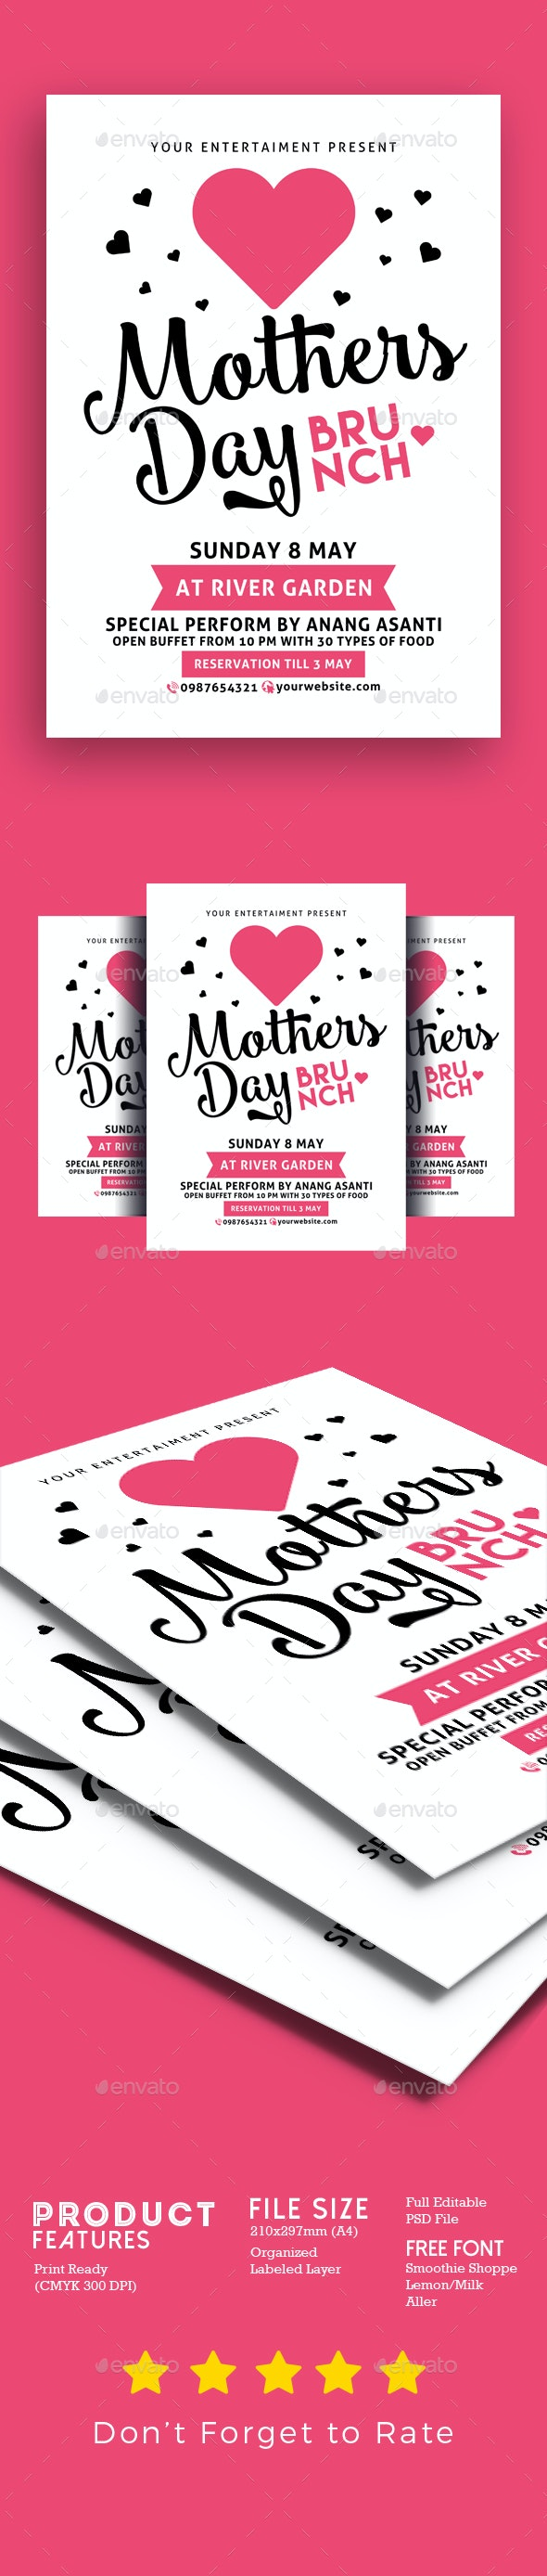 Mothers Day Brunch - Events Flyers